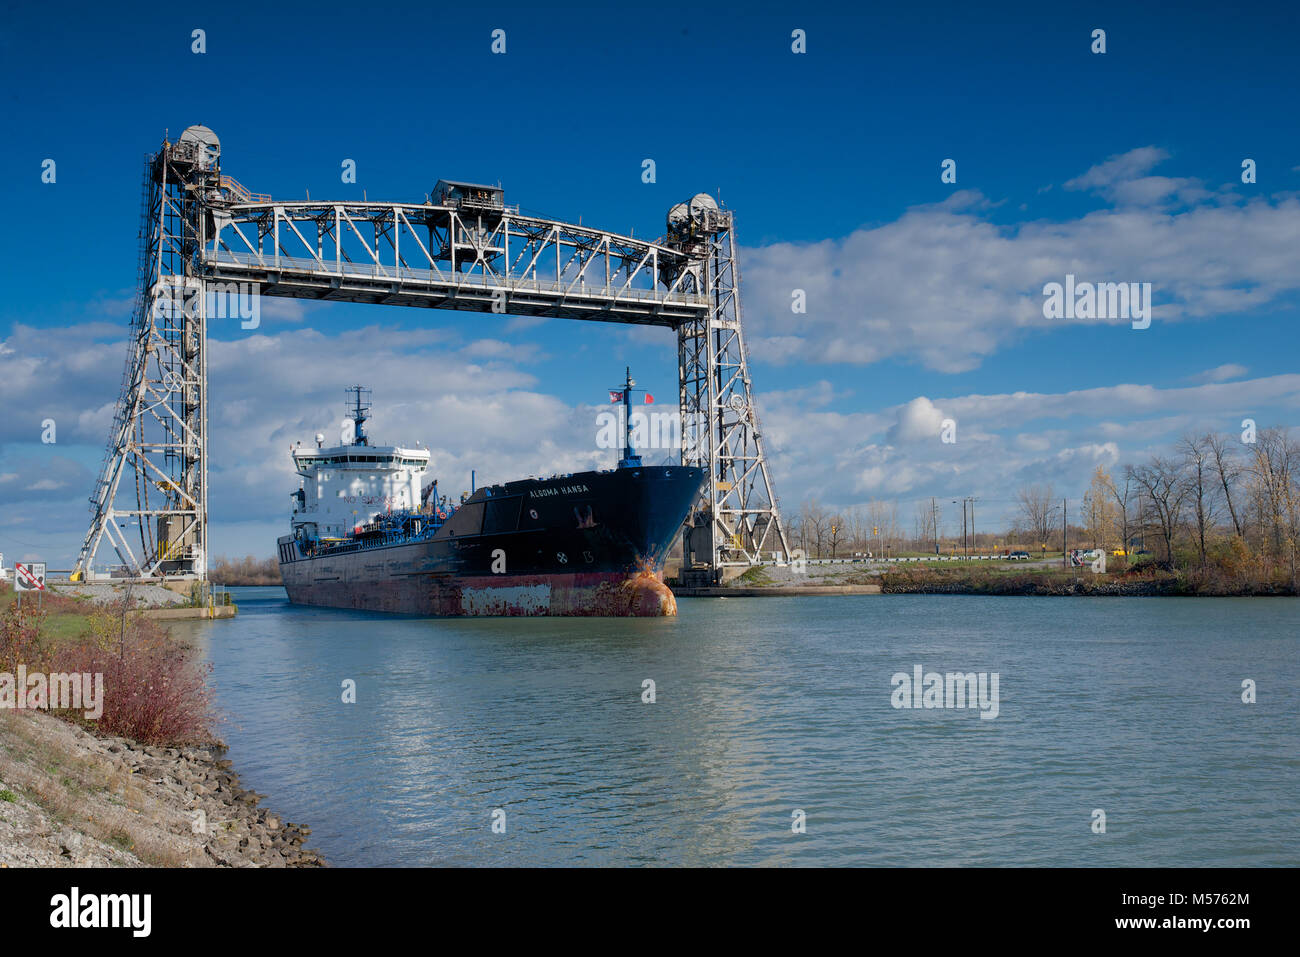 The Algoma Hansa oil/chemical tanker passing through the Welland Canal - Stock Image